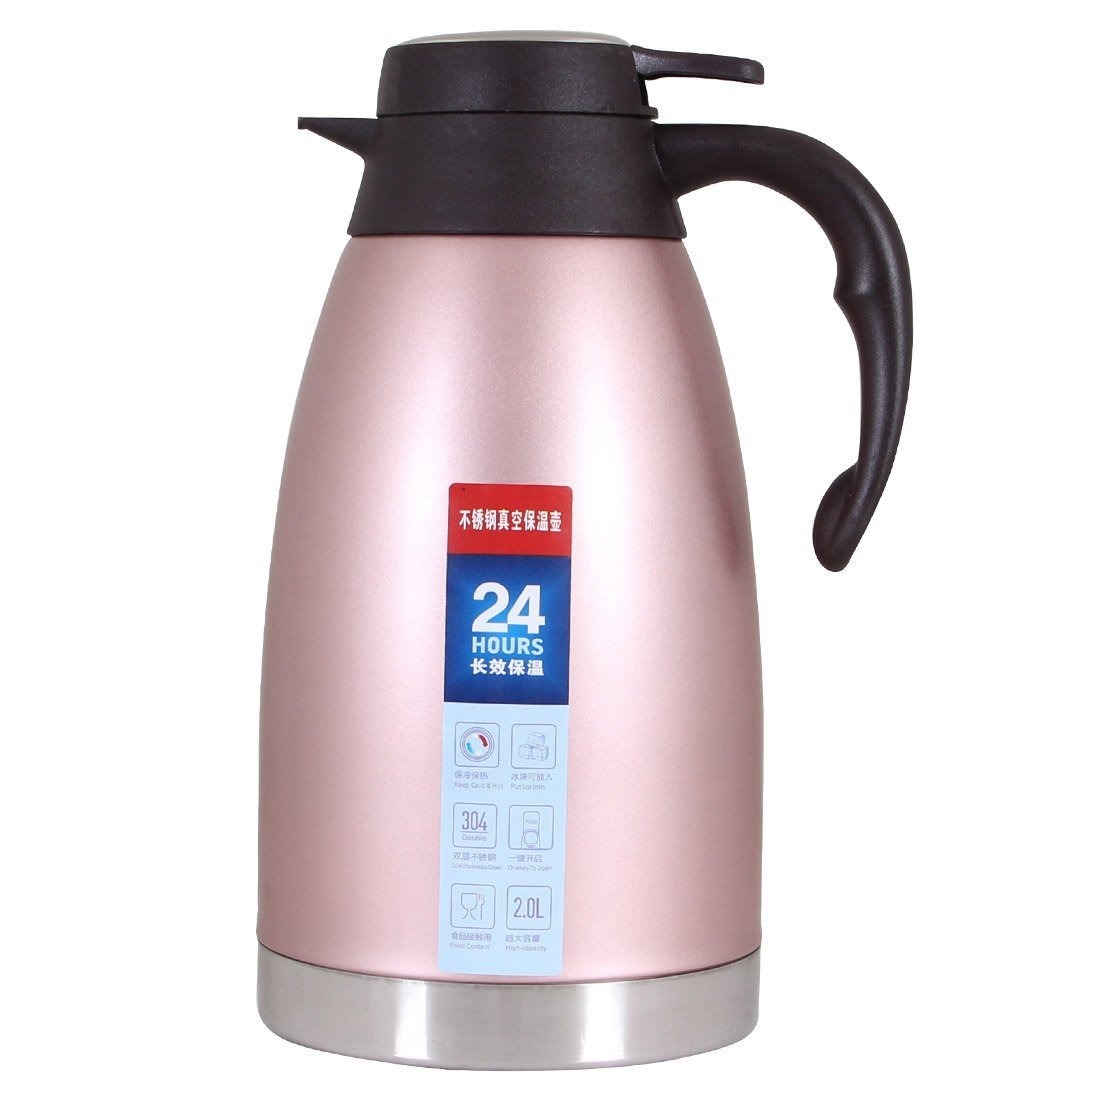 Thermal Carafe Stainless Steel Vacuum Hot Coffee Pot Double Walled Large Thermo Pitcher Tea Jug Insulated Milk Server-2L/68oz Amazing Camel